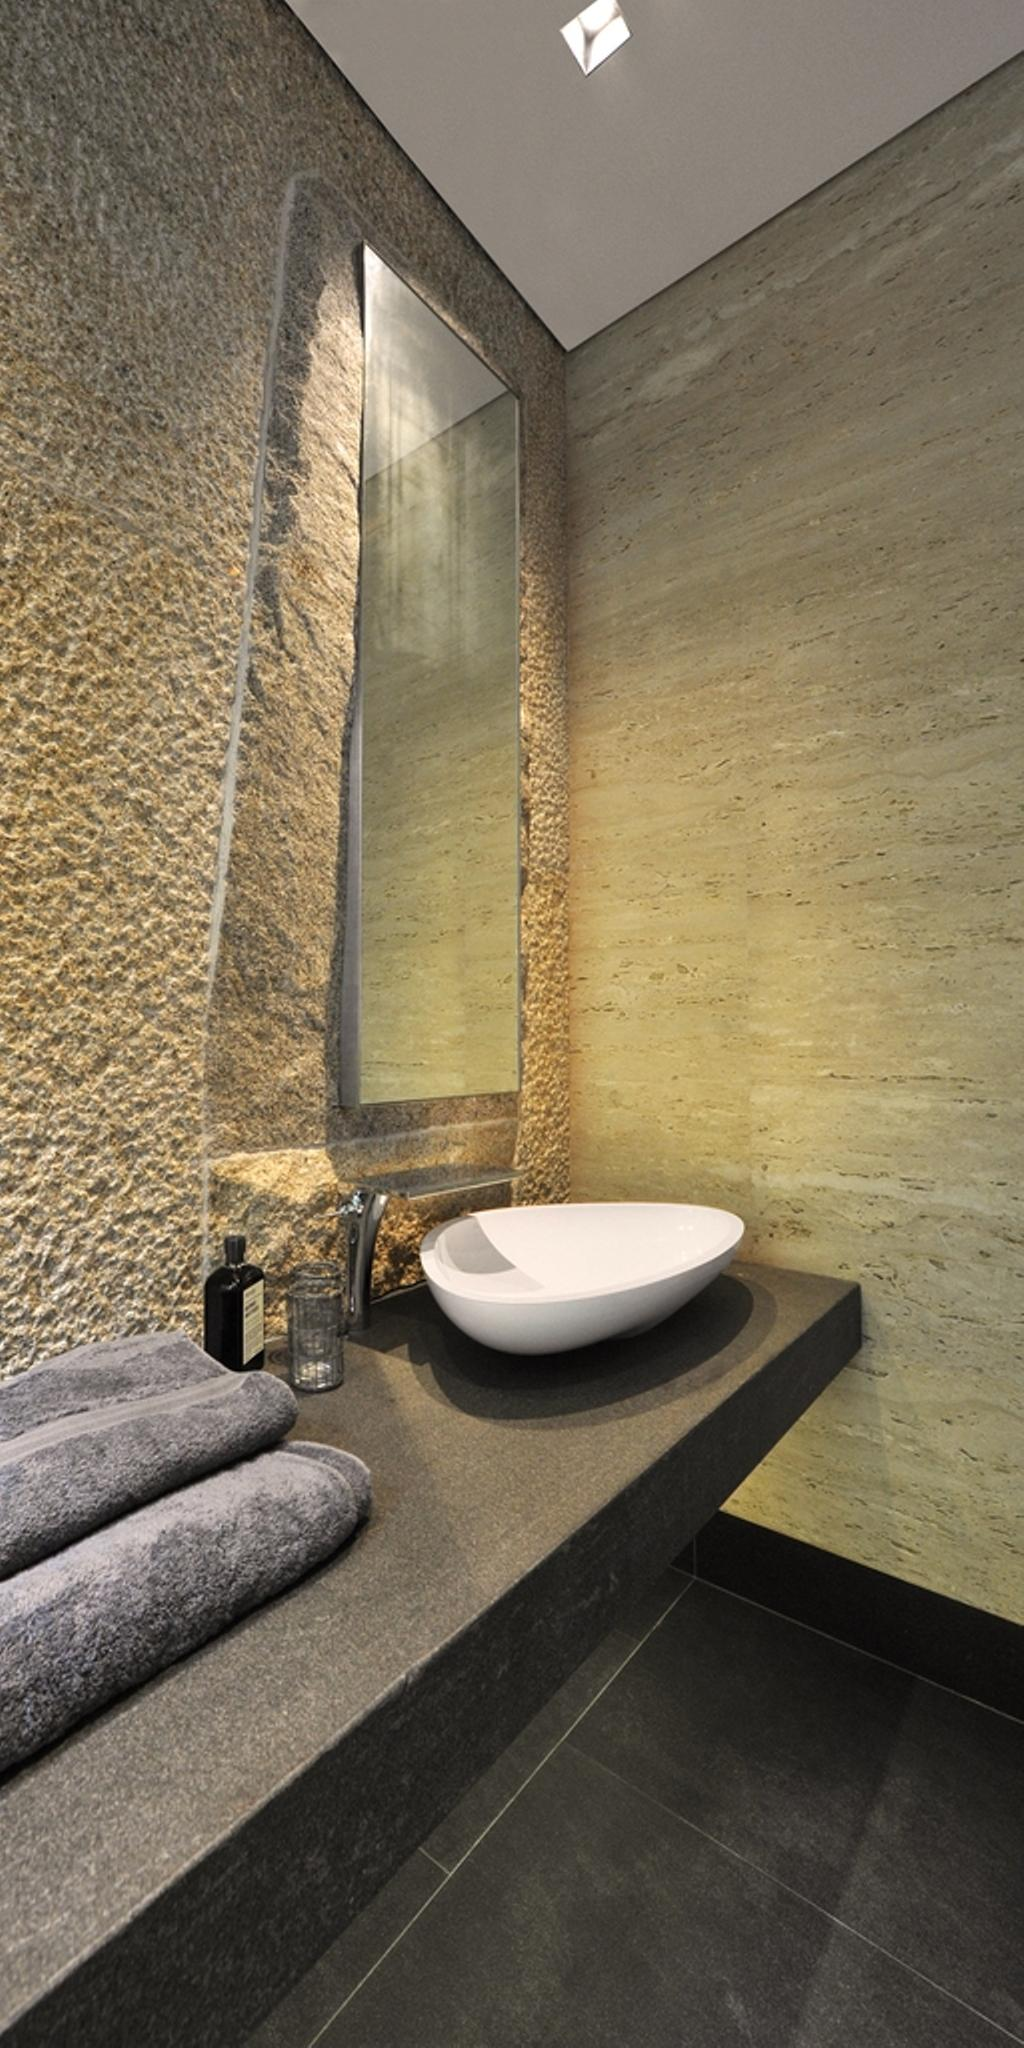 Modern, Landed, Bathroom, 66 WTR, Architect, BHATCH Architects, Resort, Stone Wall, Raw, Mirror, Vessel Sink, Bathroom Counter, Tile, Tiles, Stacco Wall, Toilet